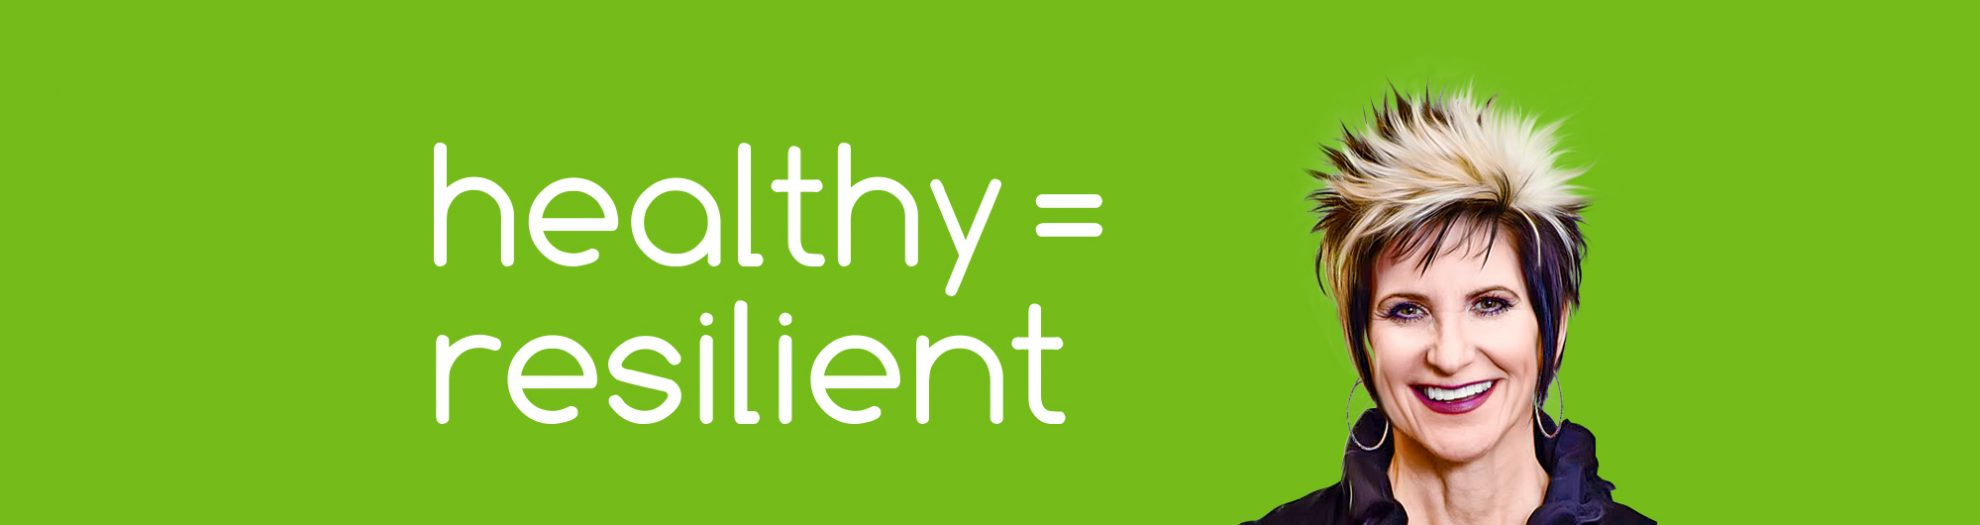 Healthy Equals Resilient